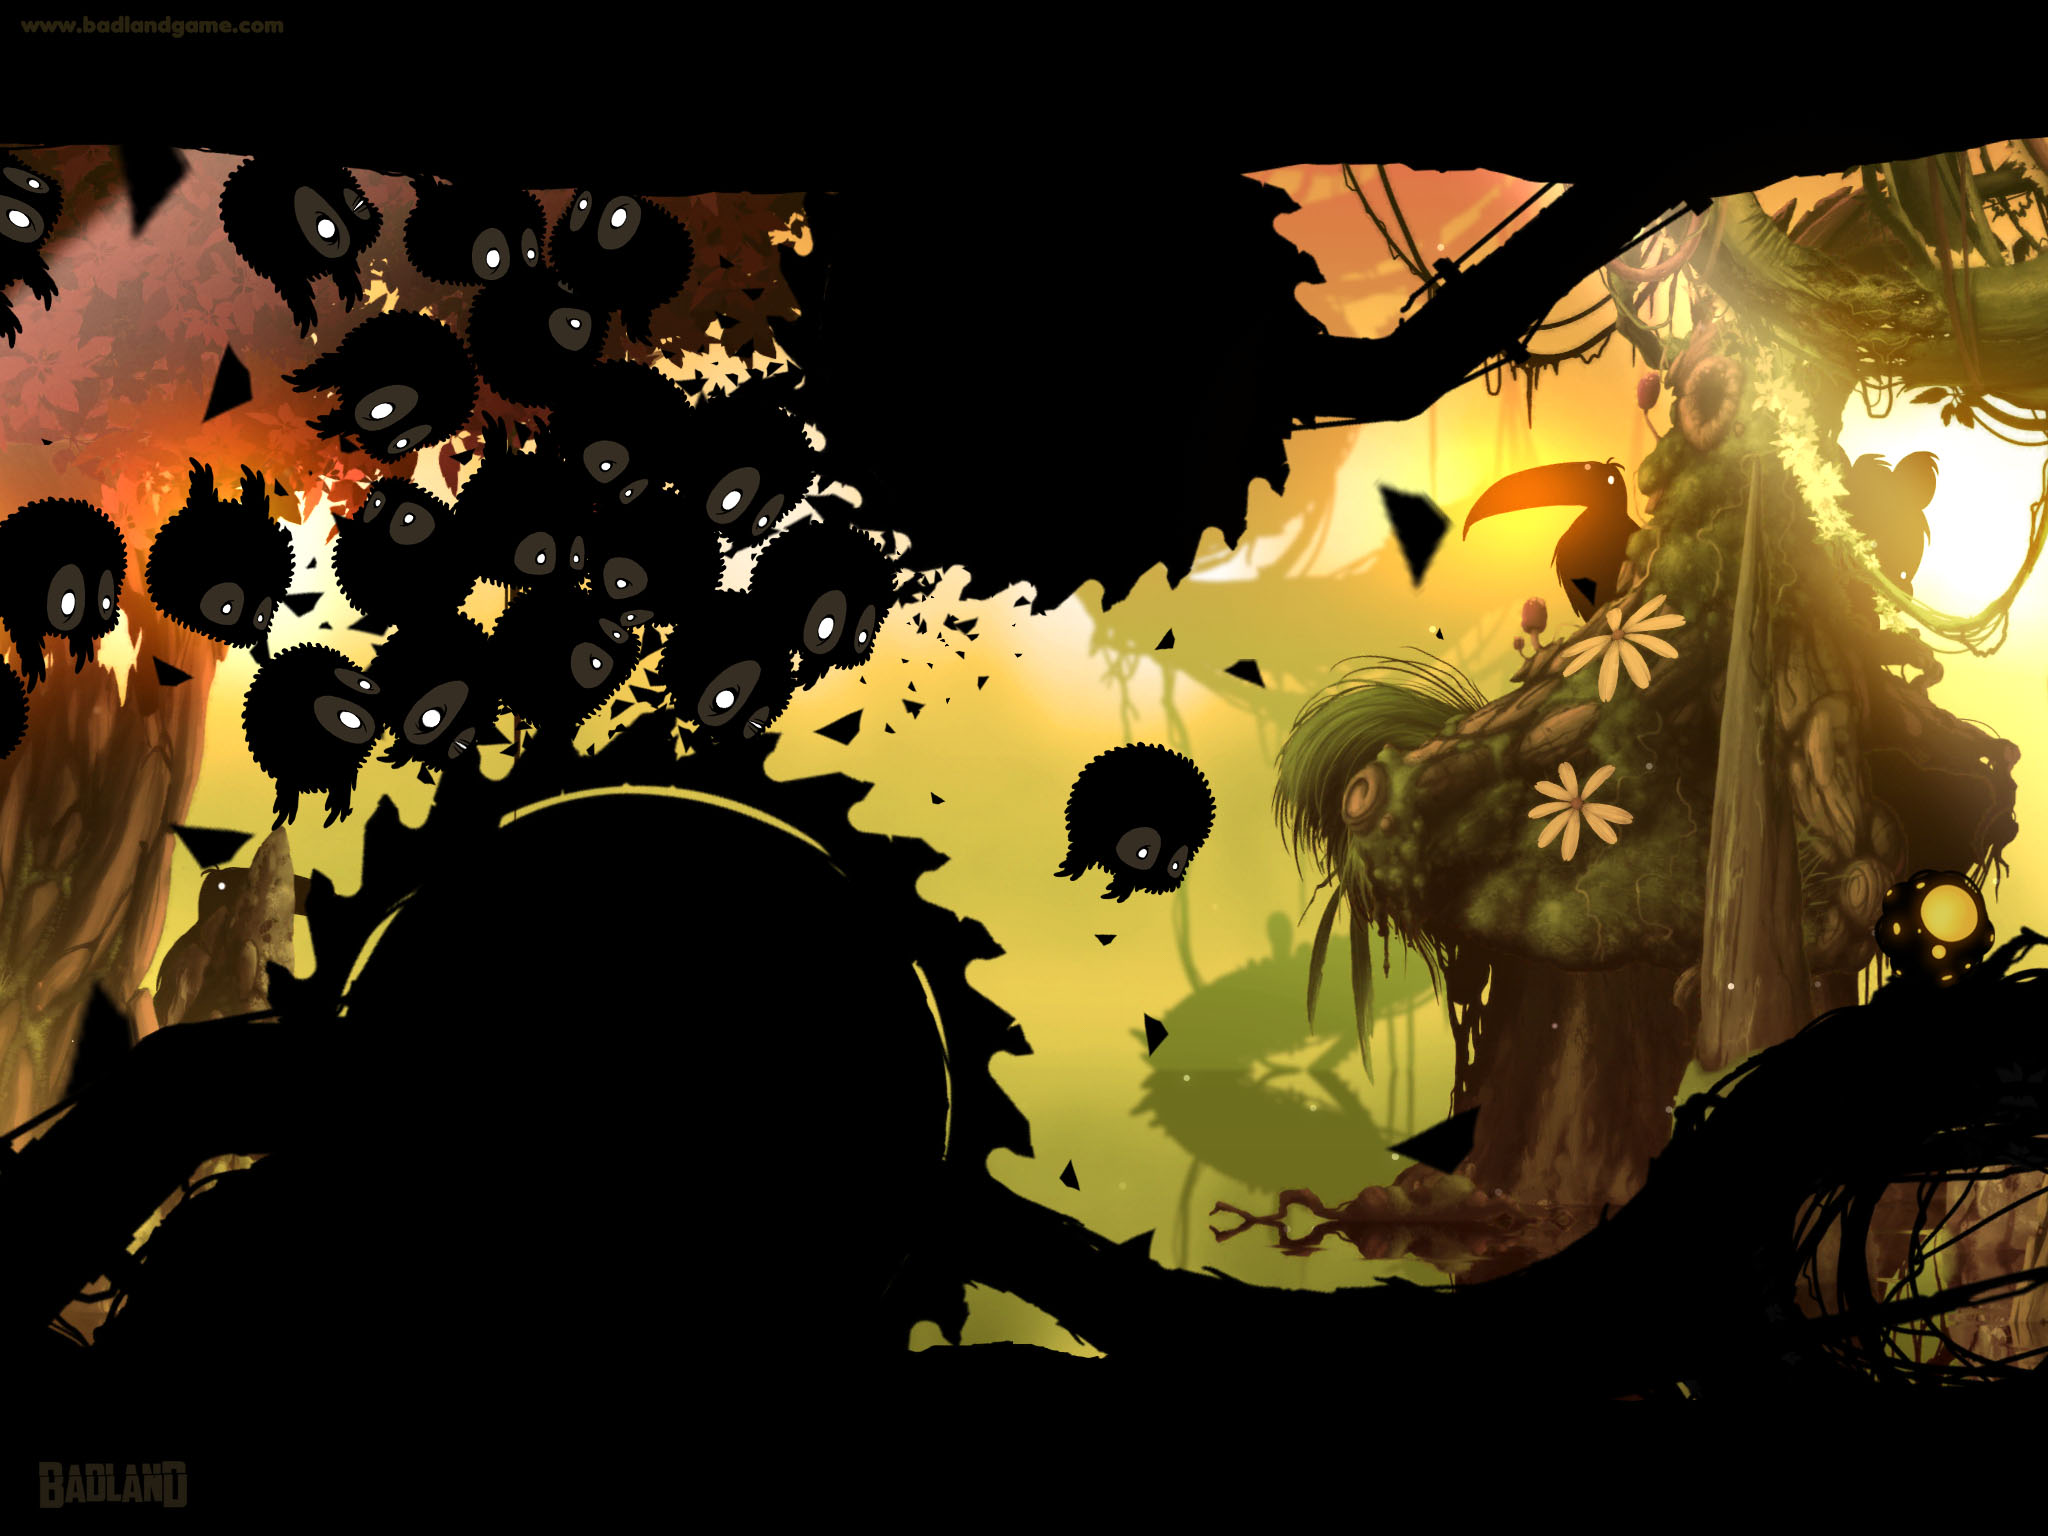 Badland's satisfying difficulty curve and stellar art direction puts it among the best mobile games yet released.